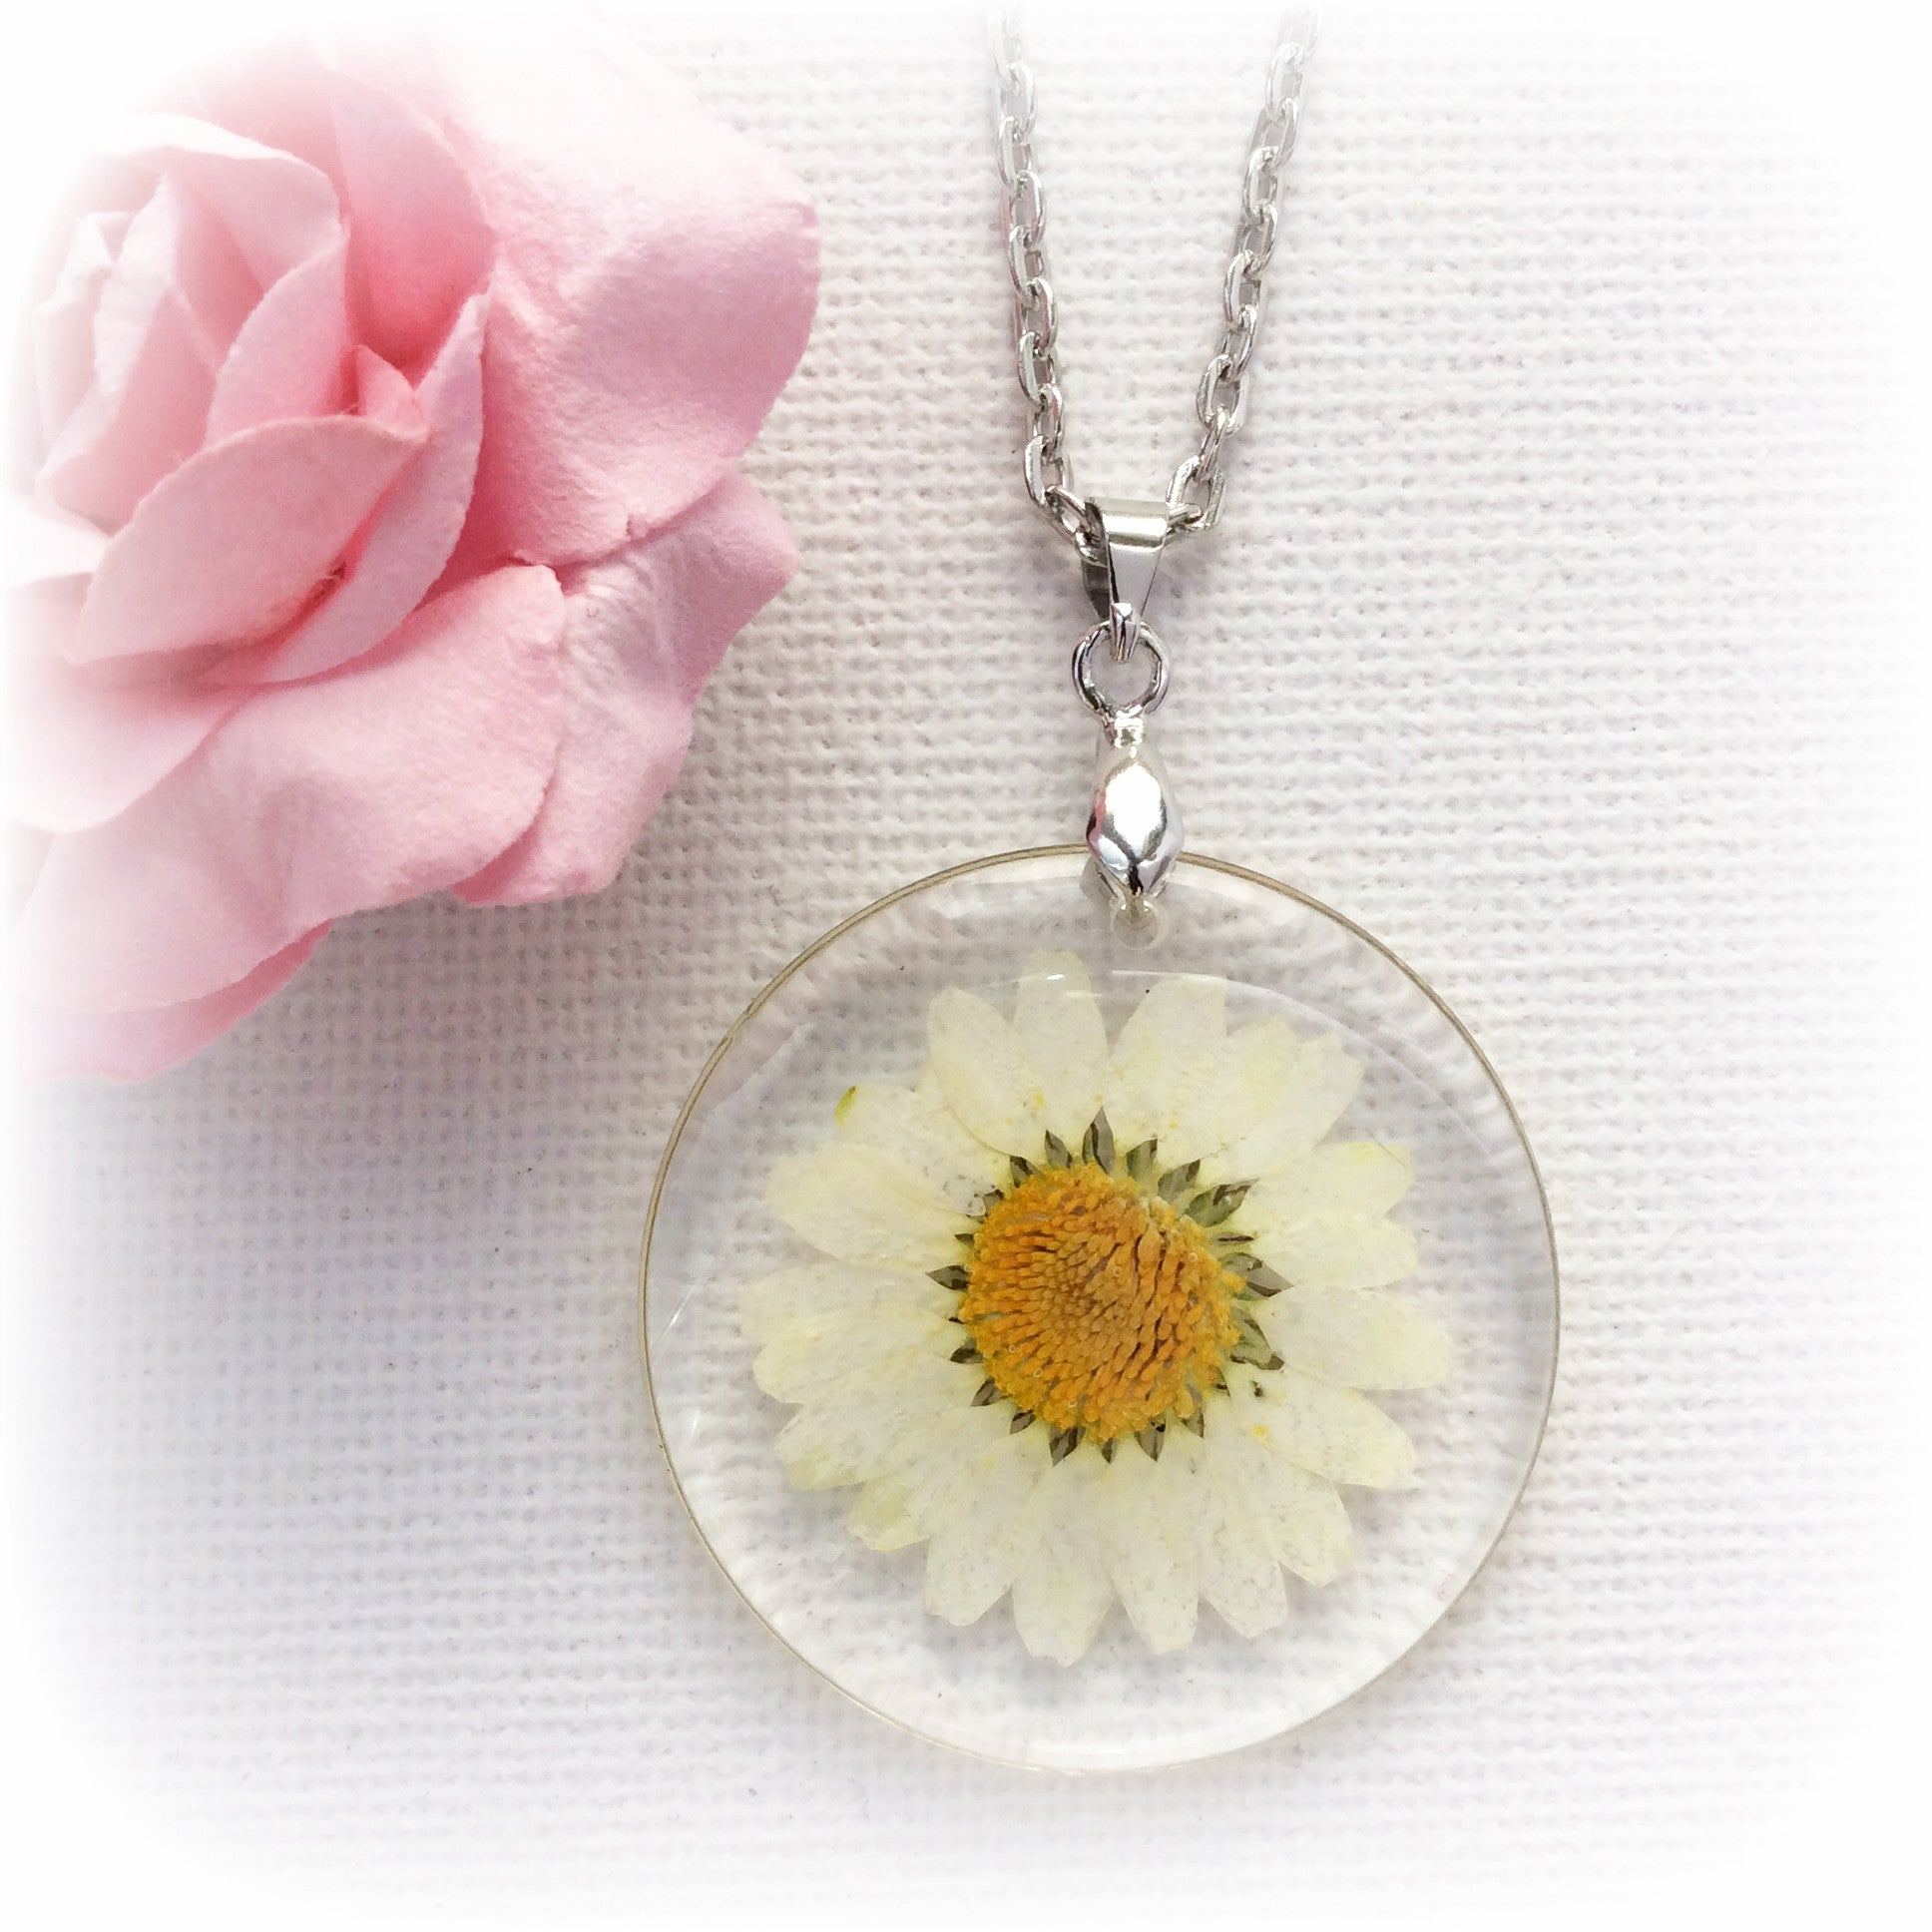 Real white daisy necklace, transparent summer flower necklace. - Statement Made Jewellery